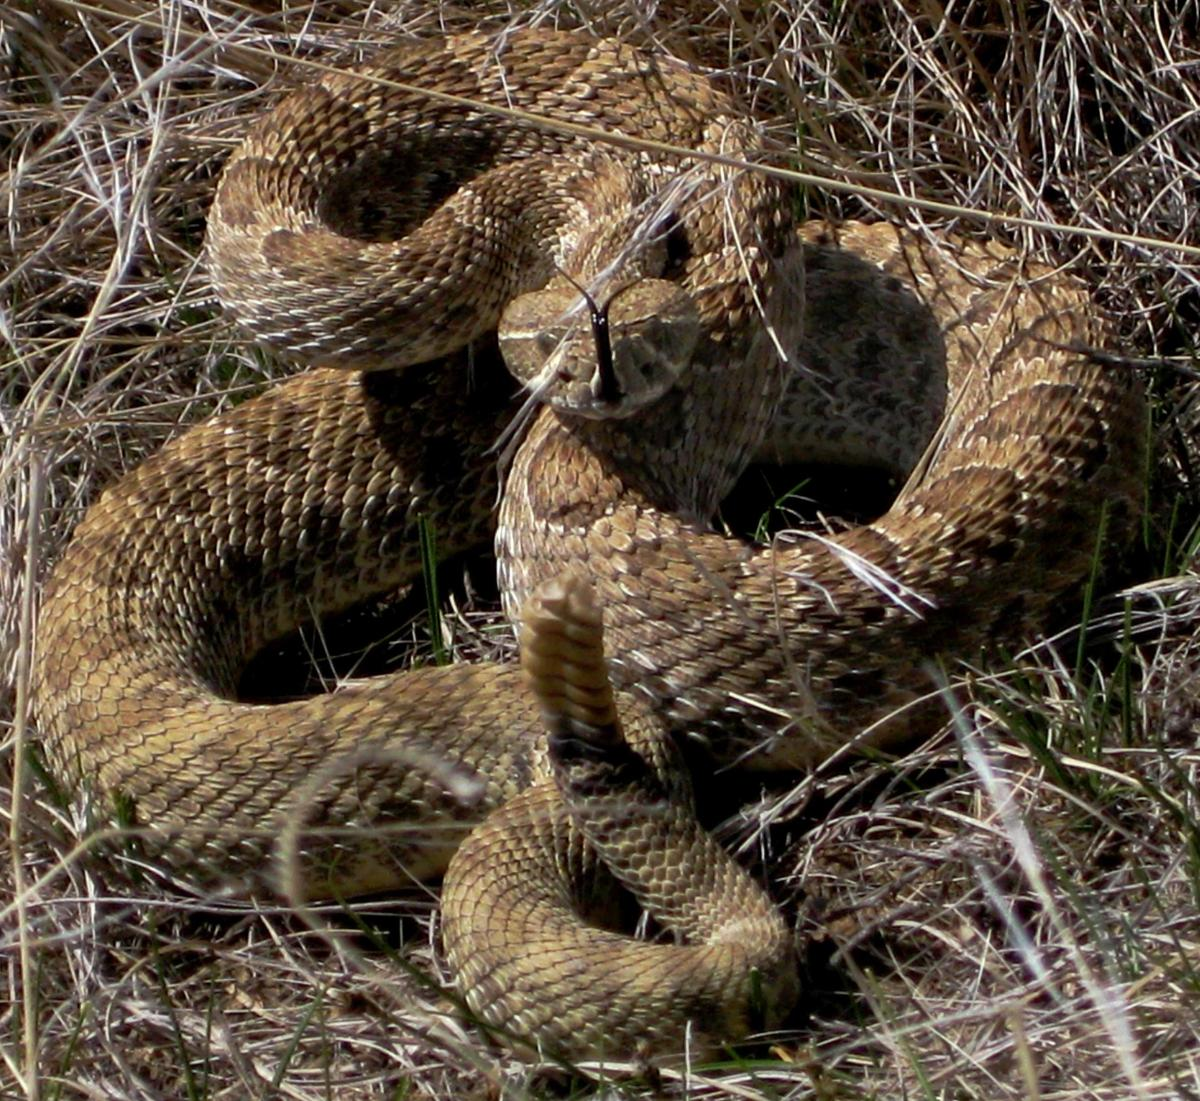 A Prairie Rattlesnake (Crotalus viridis viridis), which is the ideal candidate for these five quick-and-dirty rules for identifying Pitvipers in the United States.  Rattlesnakes are limited in distribution to the Americas.